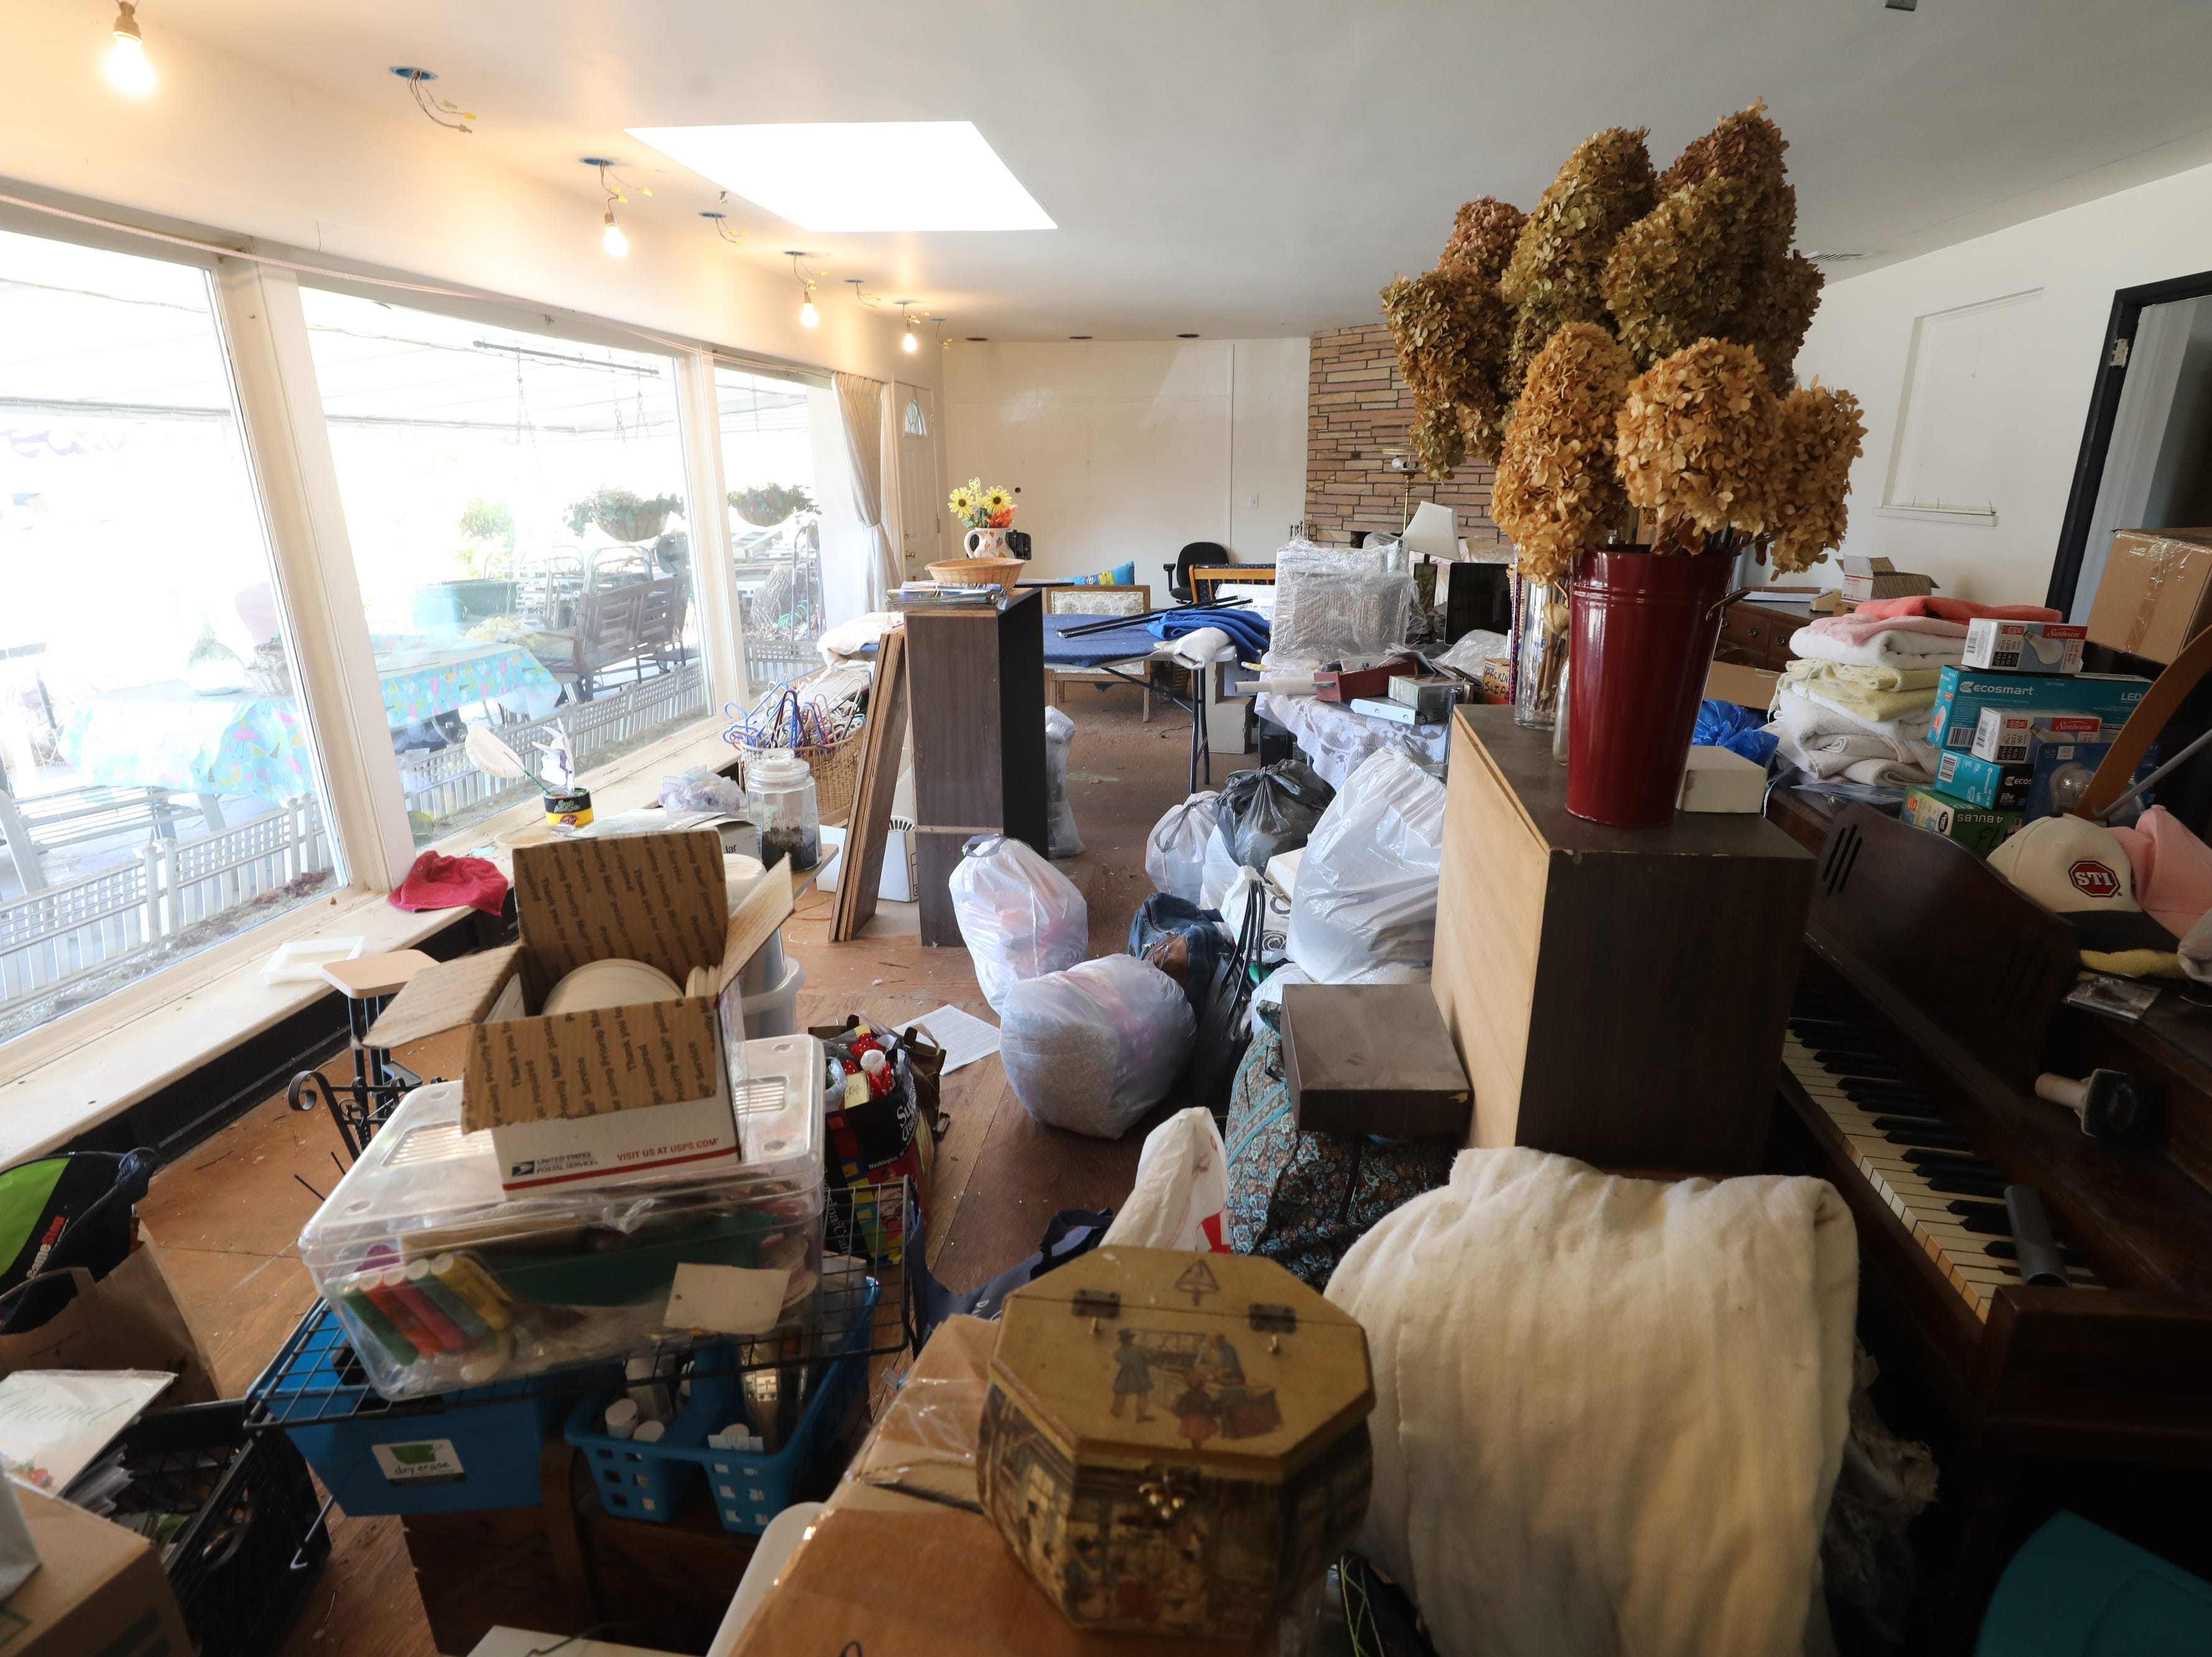 Items are ready to be moved in the living room of the home where Charles D'Alessandro and his sister have lived for the past 15 years. They are being evicted from the home on March 19, 2019, after failing to pay the mortgage for the past 10 years.